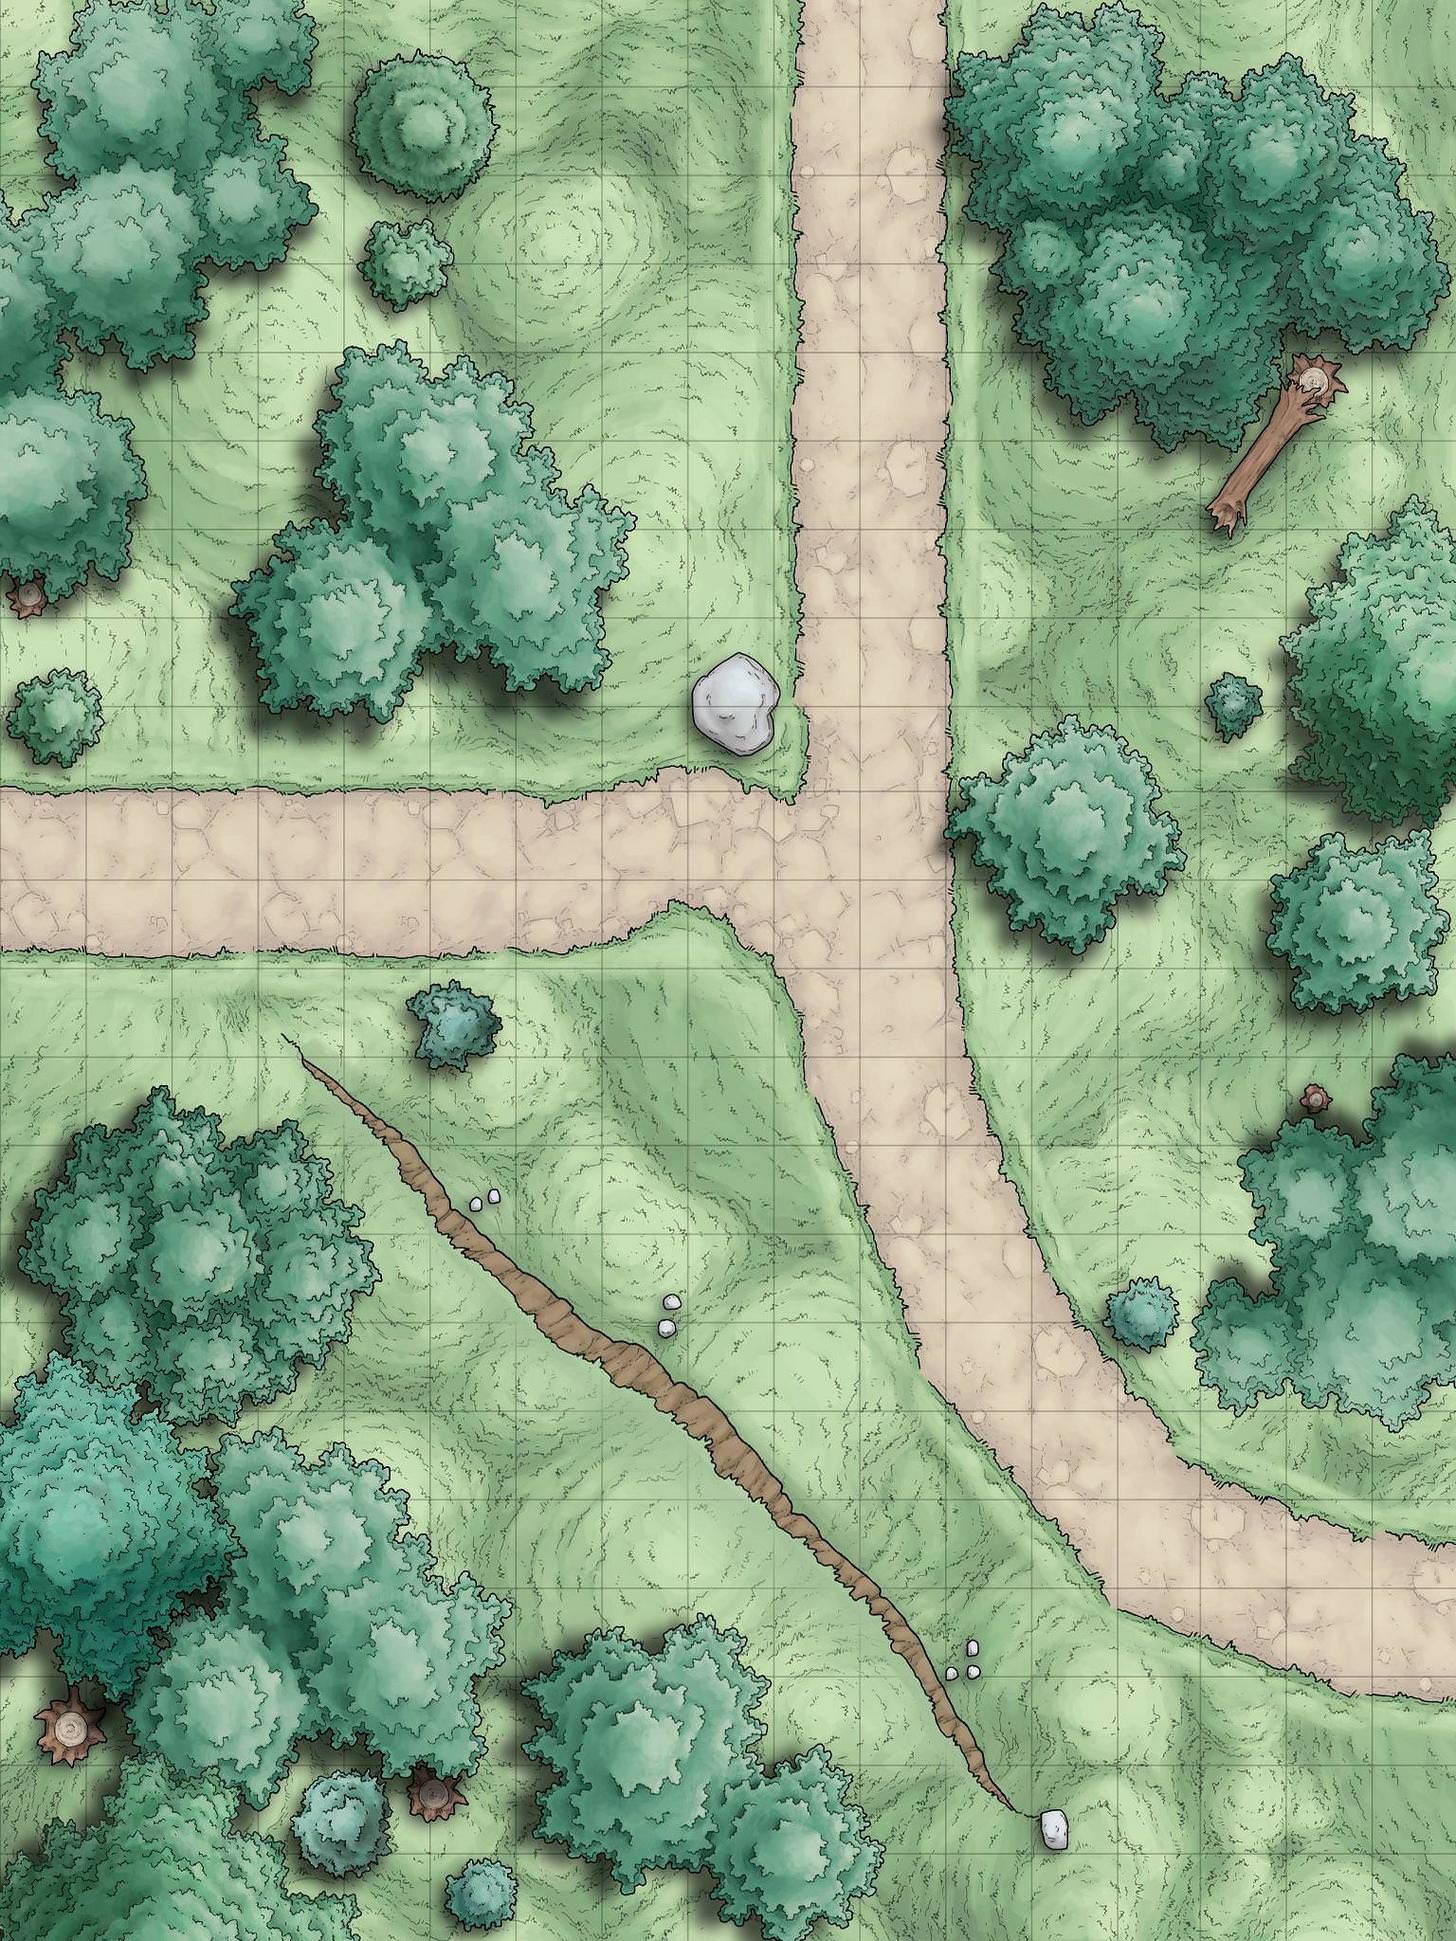 Random Encounter Battle Maps In 2019